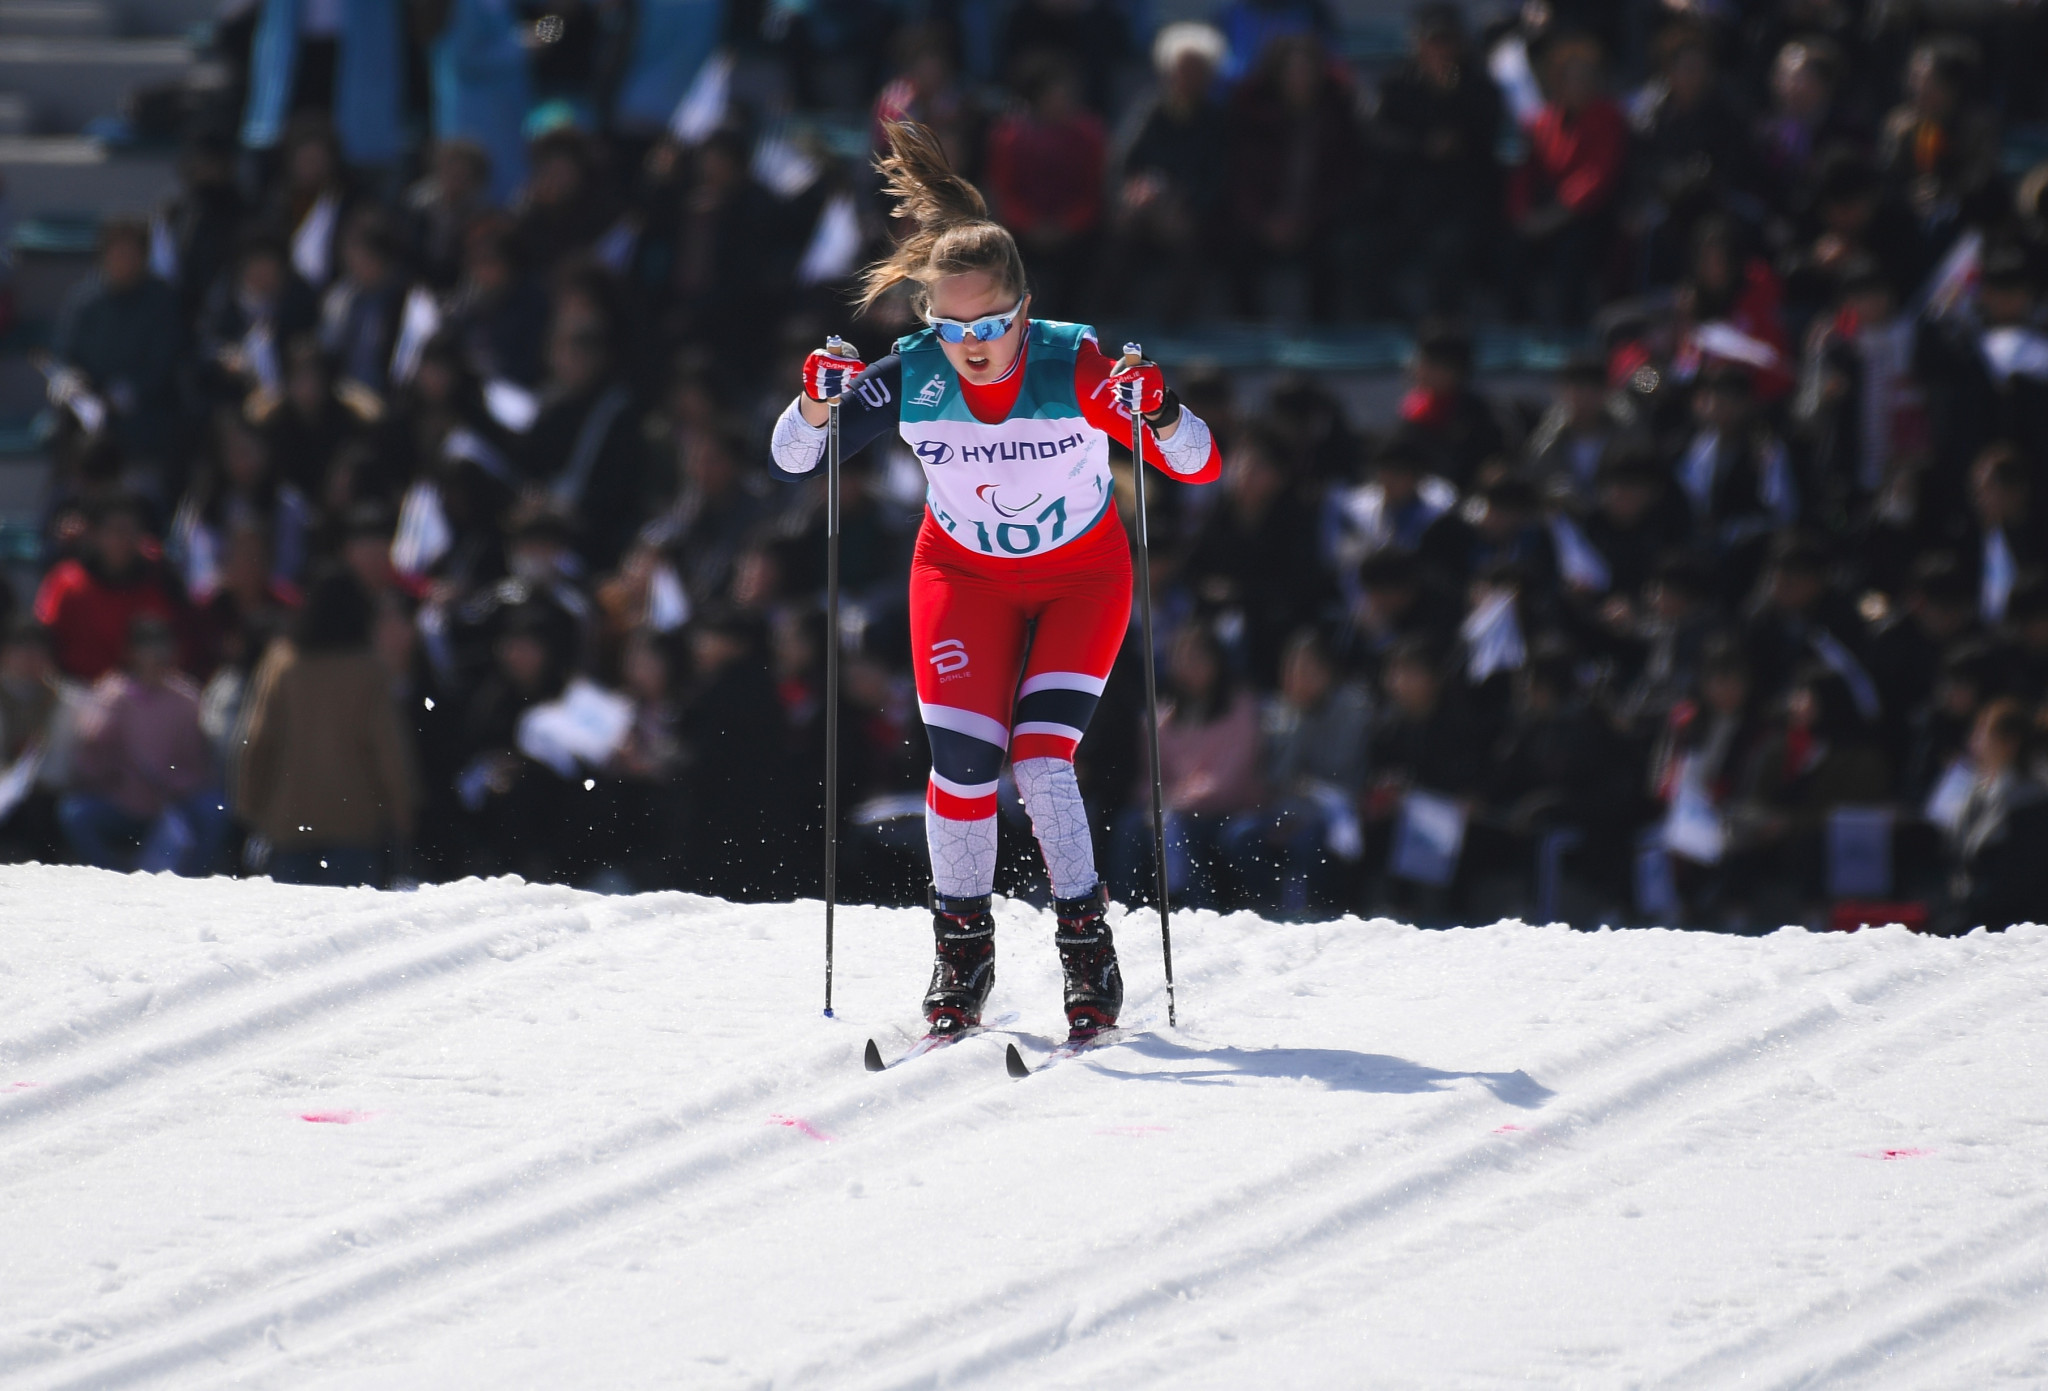 Norway's Vilde Nilsen, winner of a surprise Paralympic Games silver medal at Pyeongchang 2018, gained her first world title today with victory in the women's standing race ©Getty Images